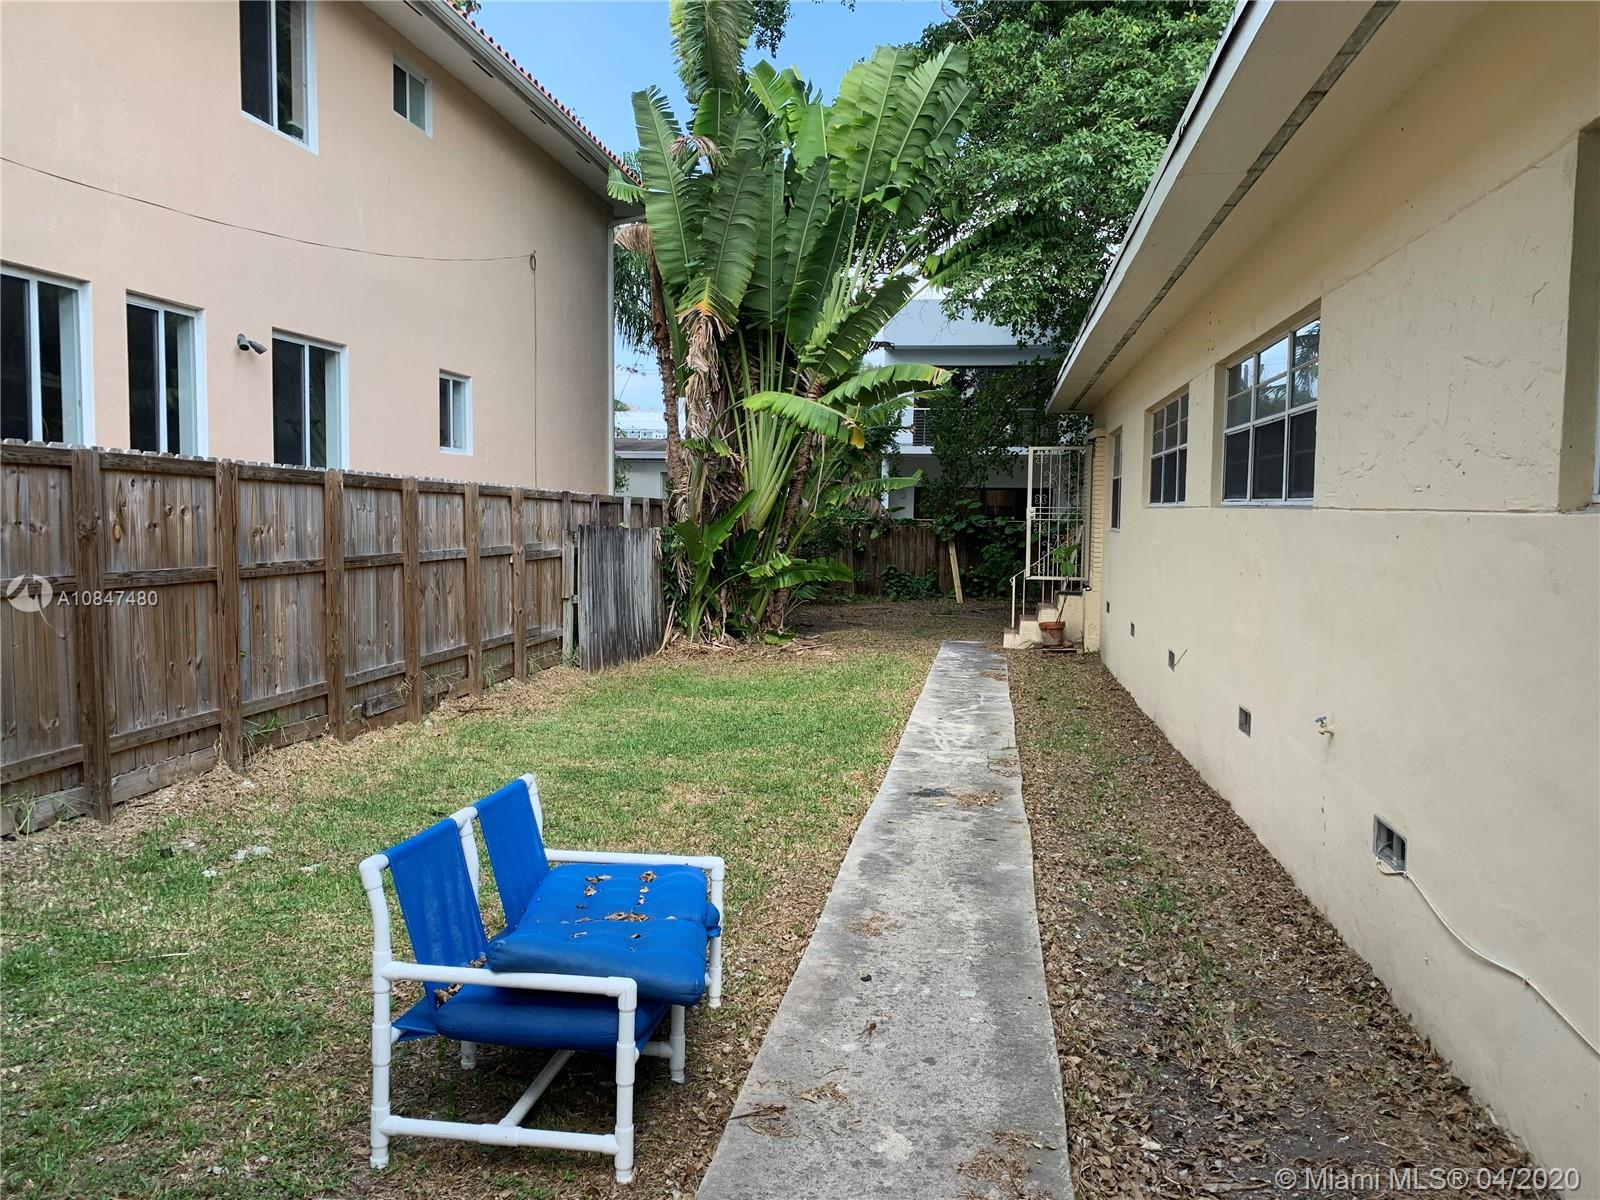 3135  NEW YORK ST #2 For Sale A10847480, FL